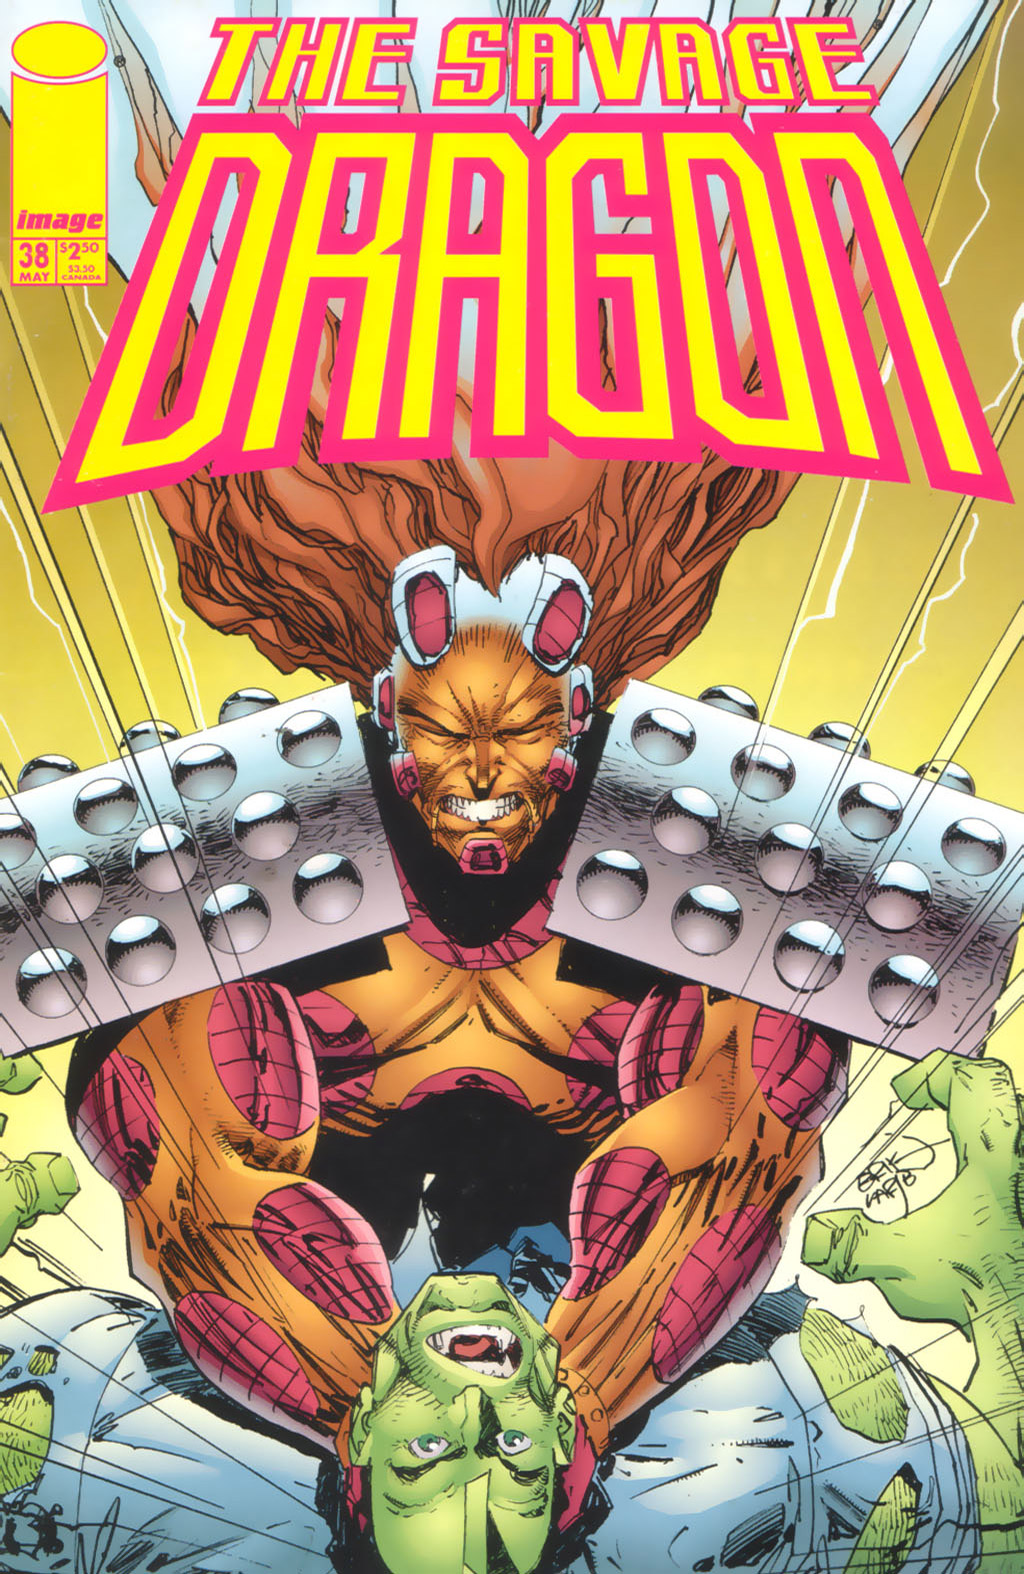 Cover Savage Dragon Vol.2 #38